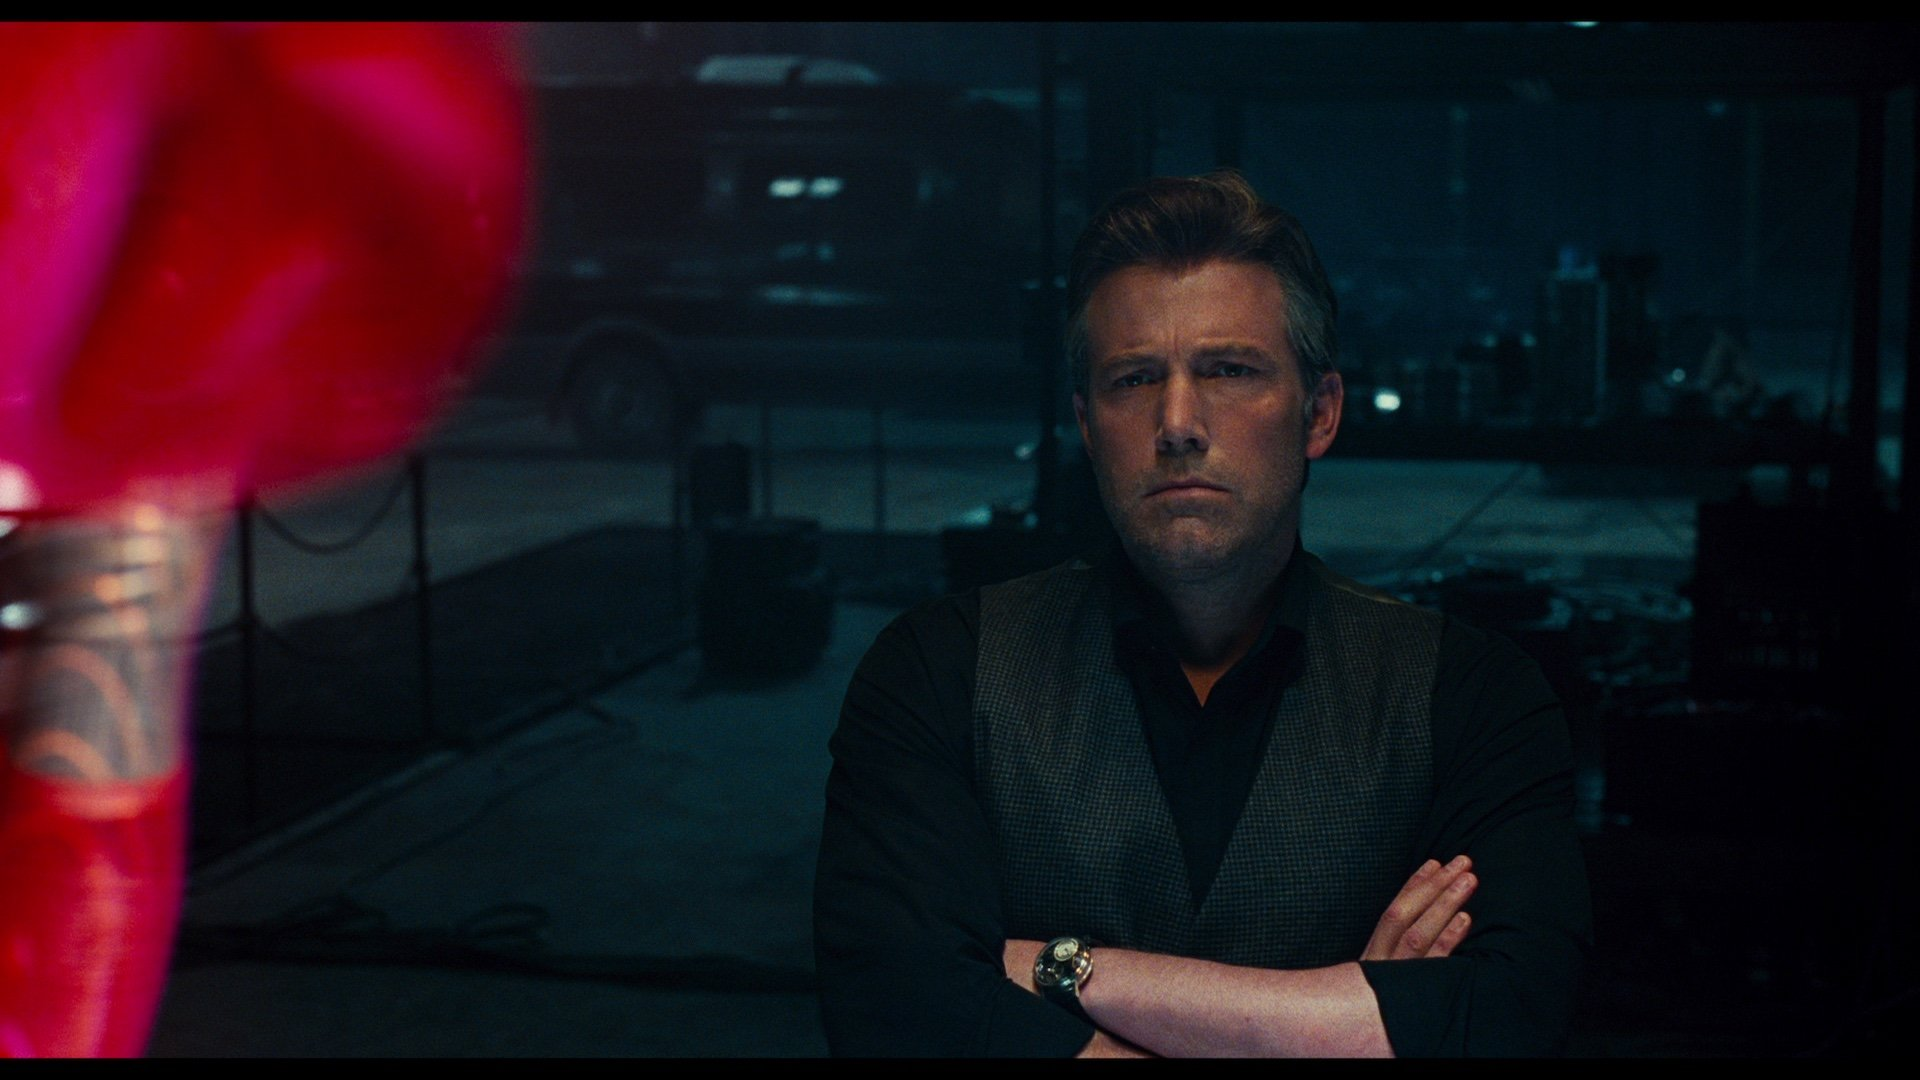 Justice League, Ben Affleck, Black Panther, Kevin Smith, The Batman